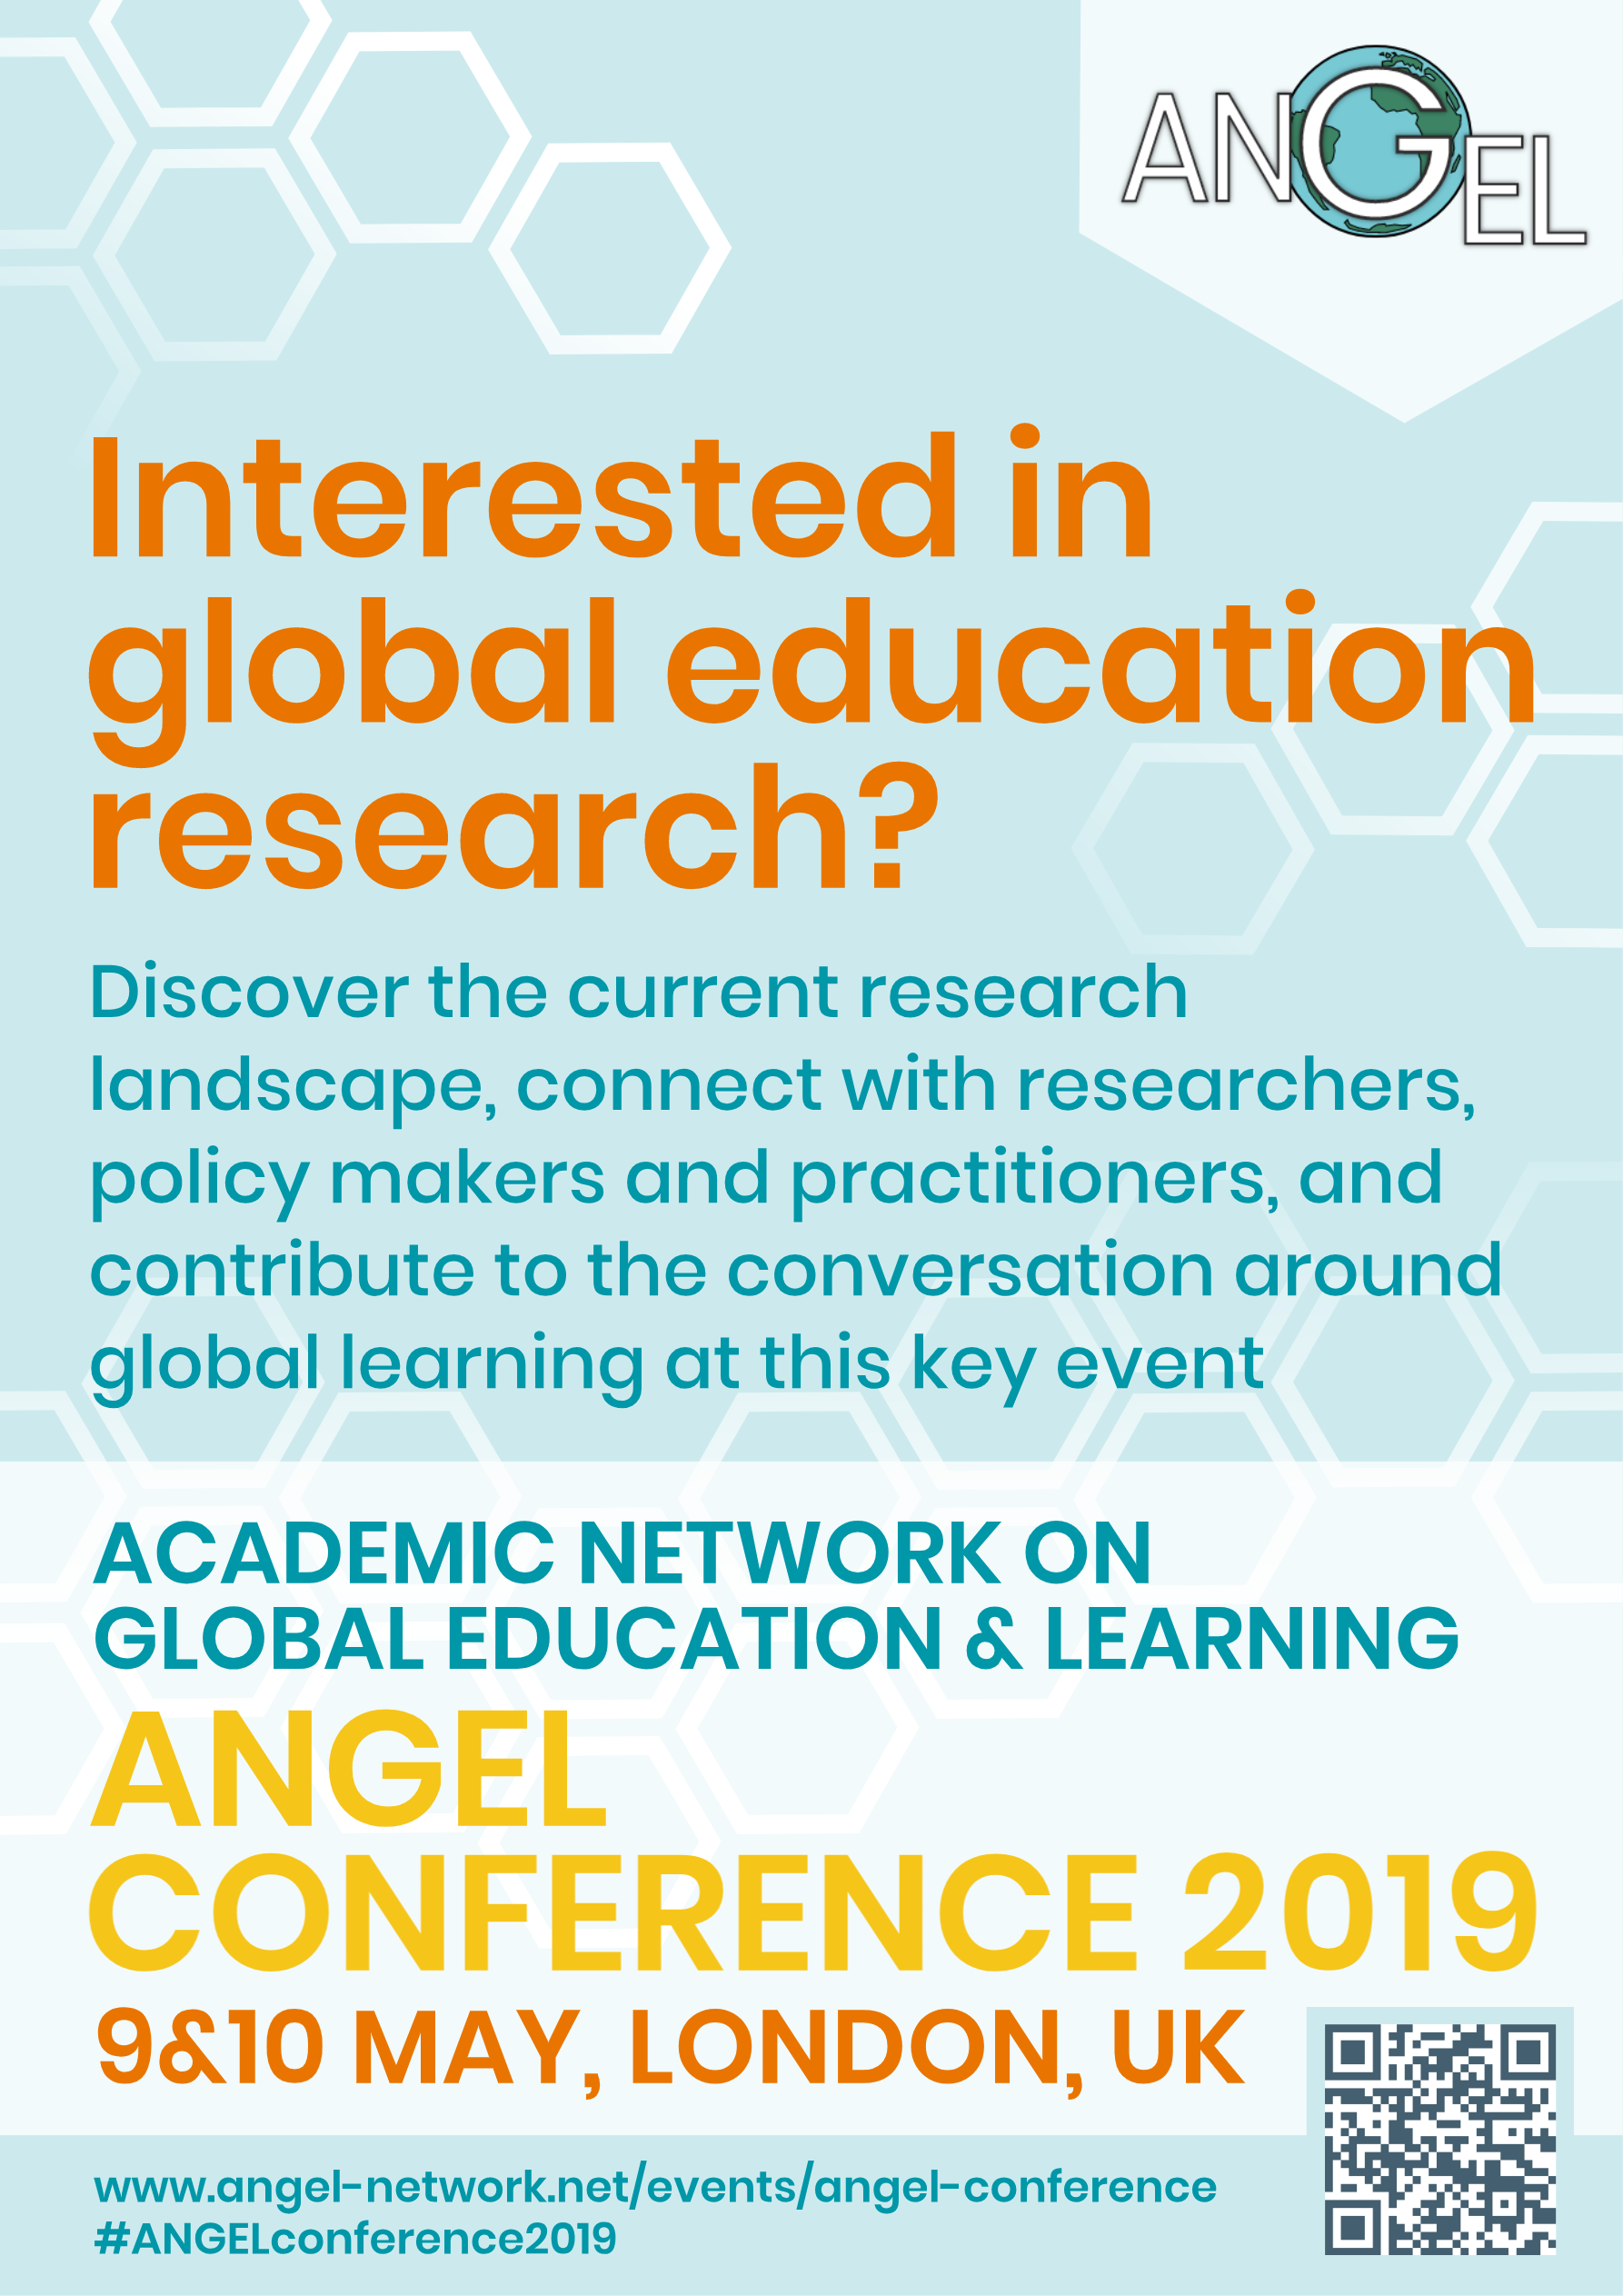 ANGEL conference 2019 poster